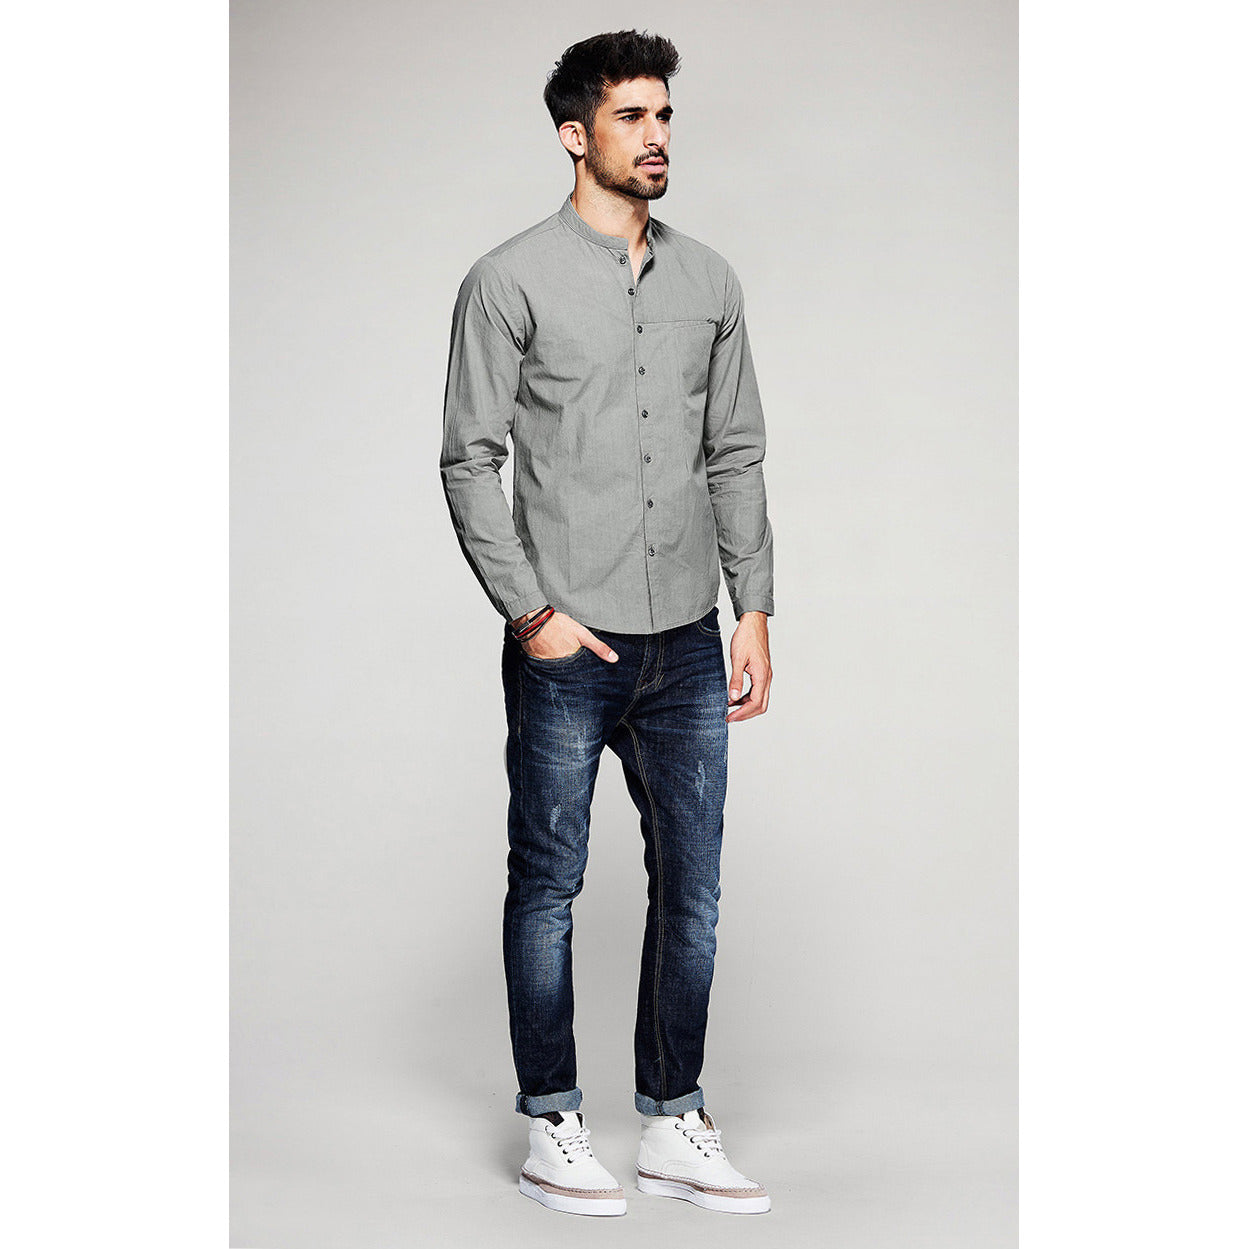 Truf Long Sleeve Gray Shirt - Haberfasher